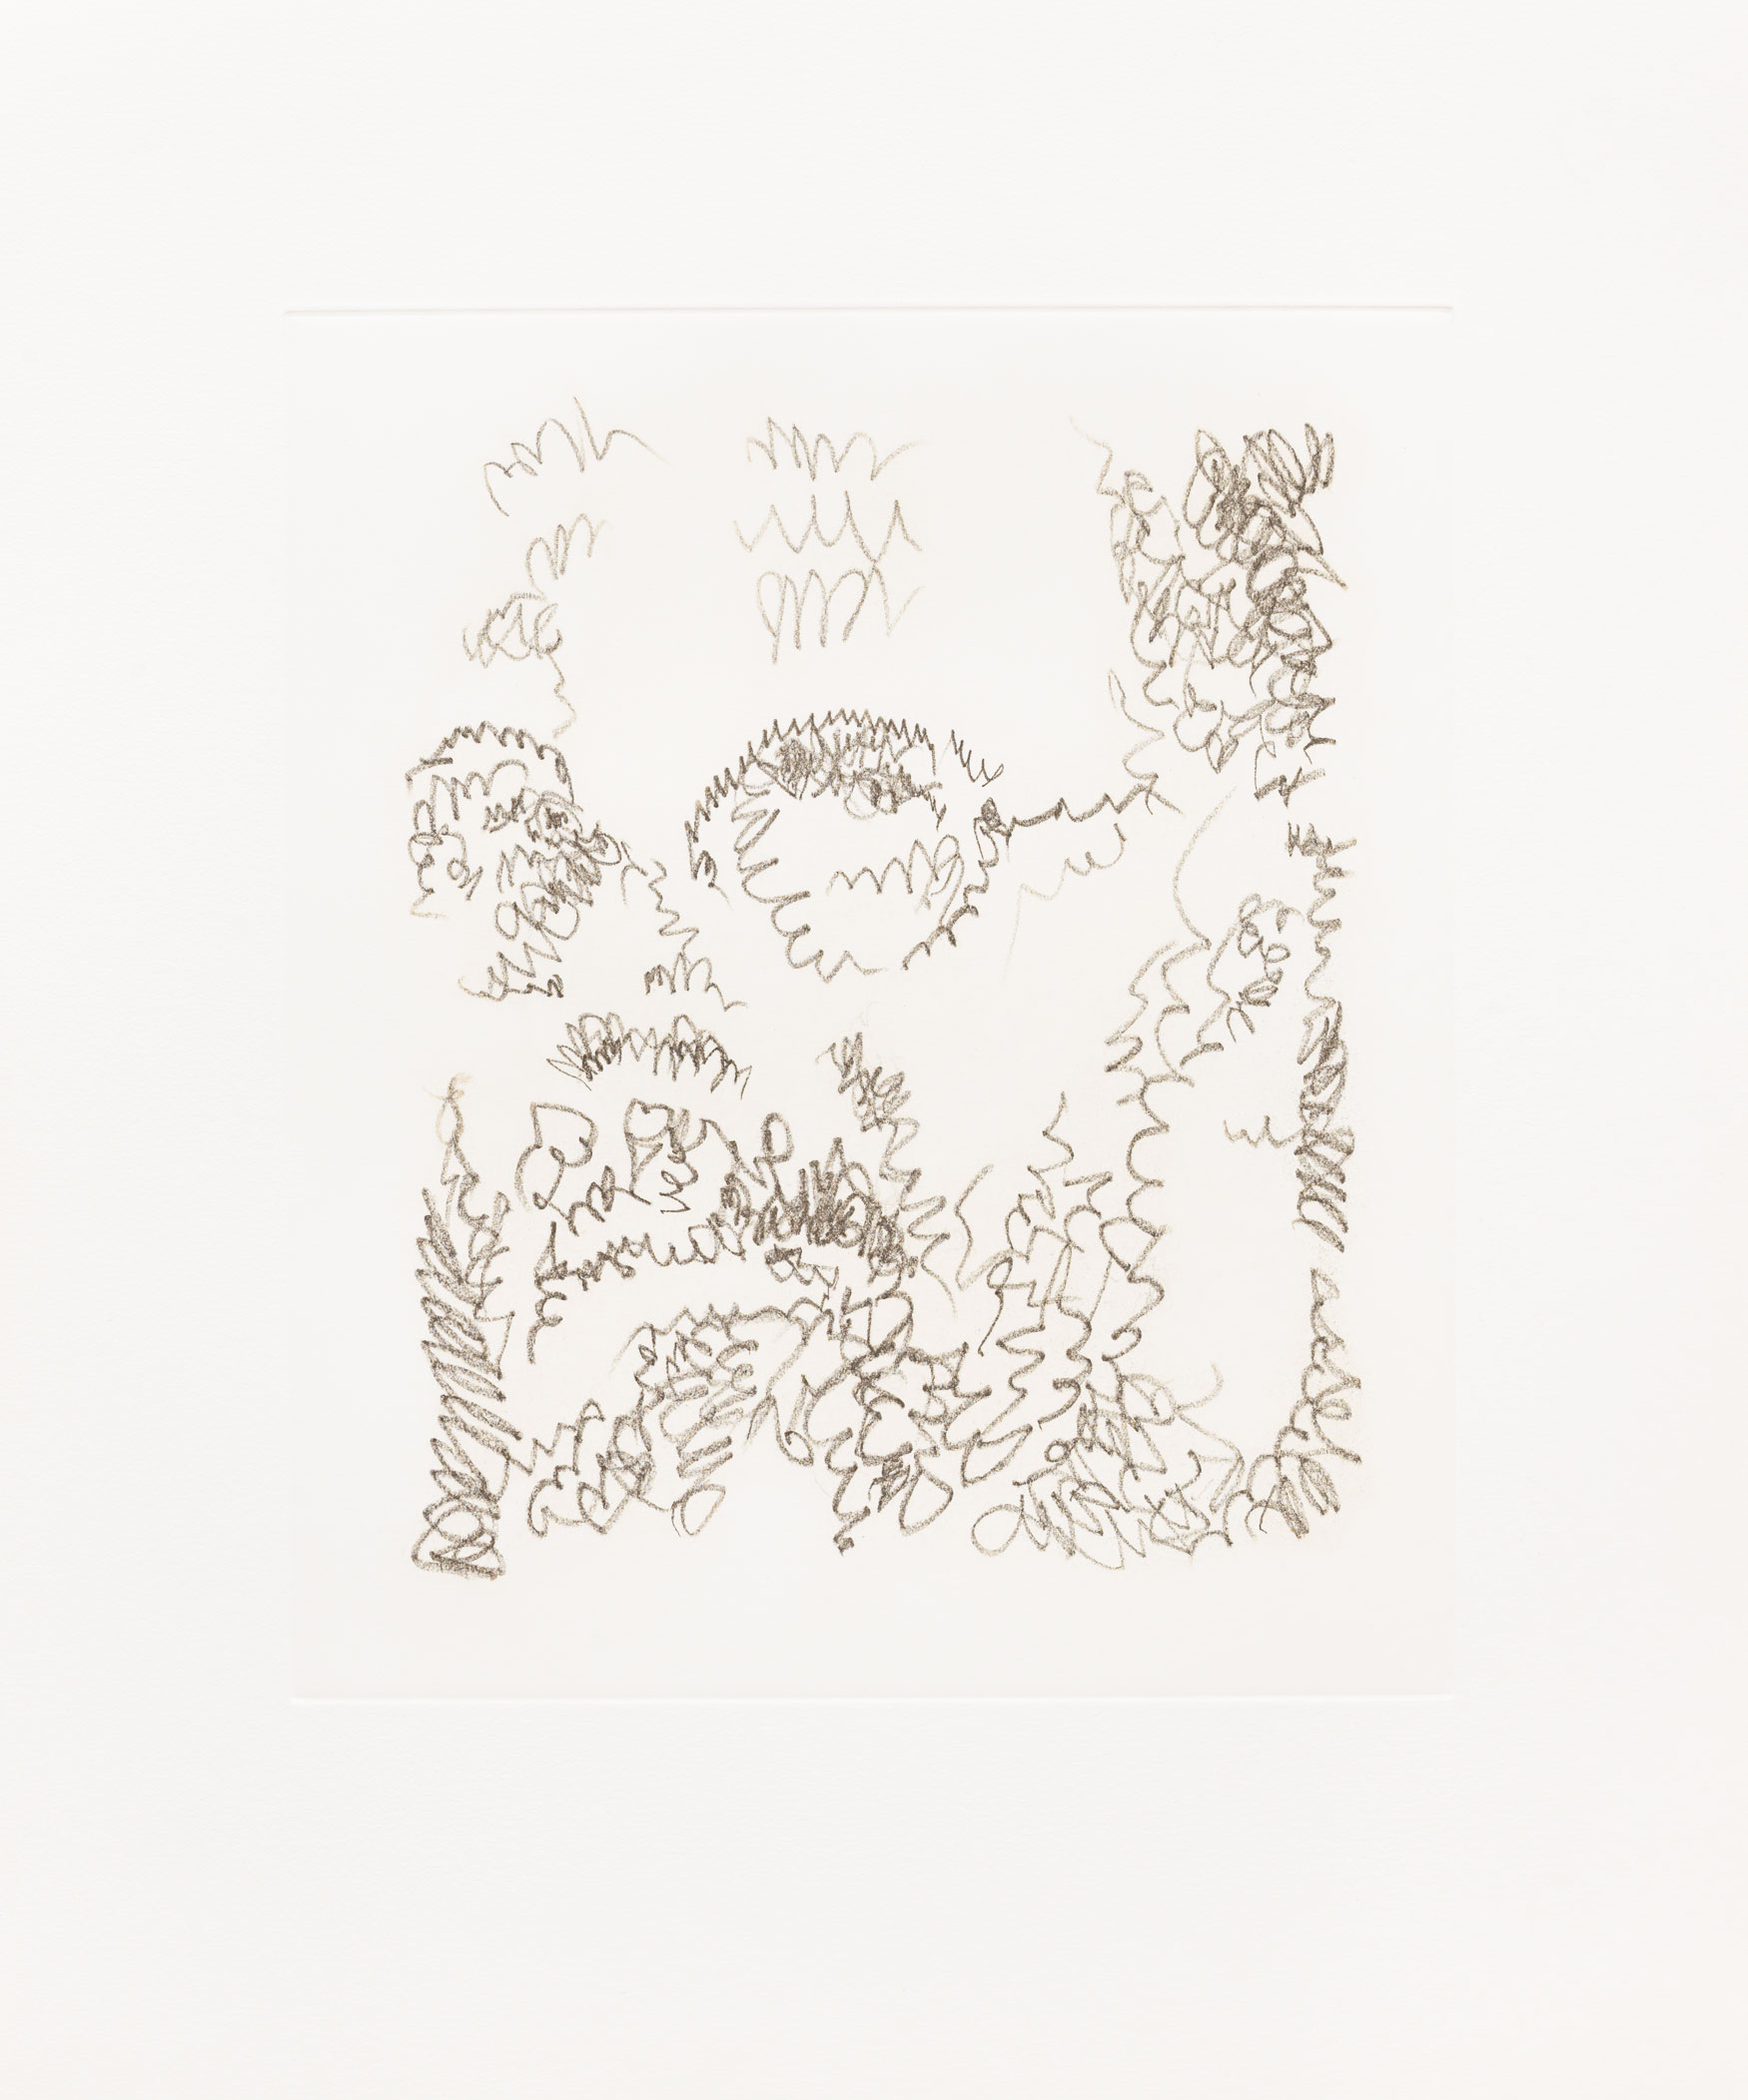 Self-Portrait/Scribble/Etching Portfolio State 10, 2000